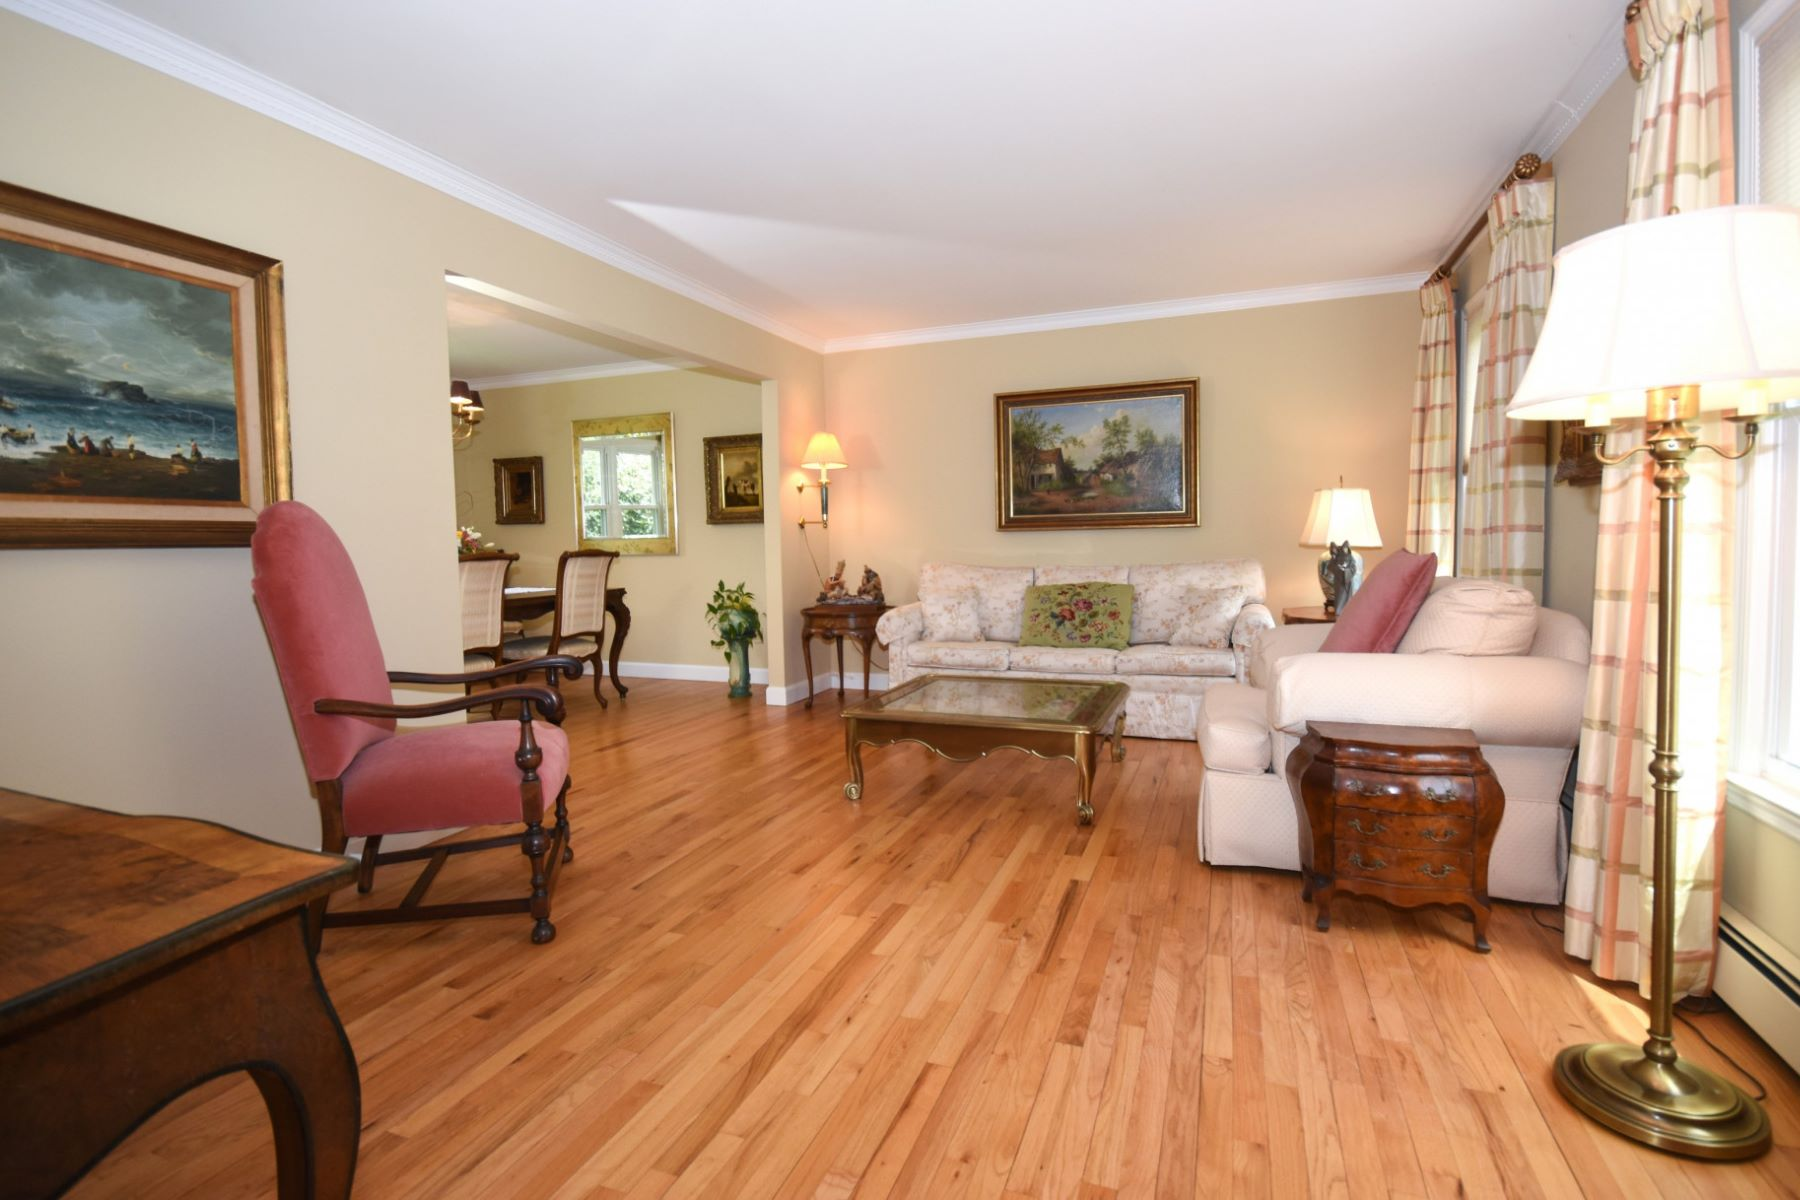 Single Family Home for Sale at Shippan Colonial 9 Sound Avenue, Stamford, Connecticut, 06902 United States